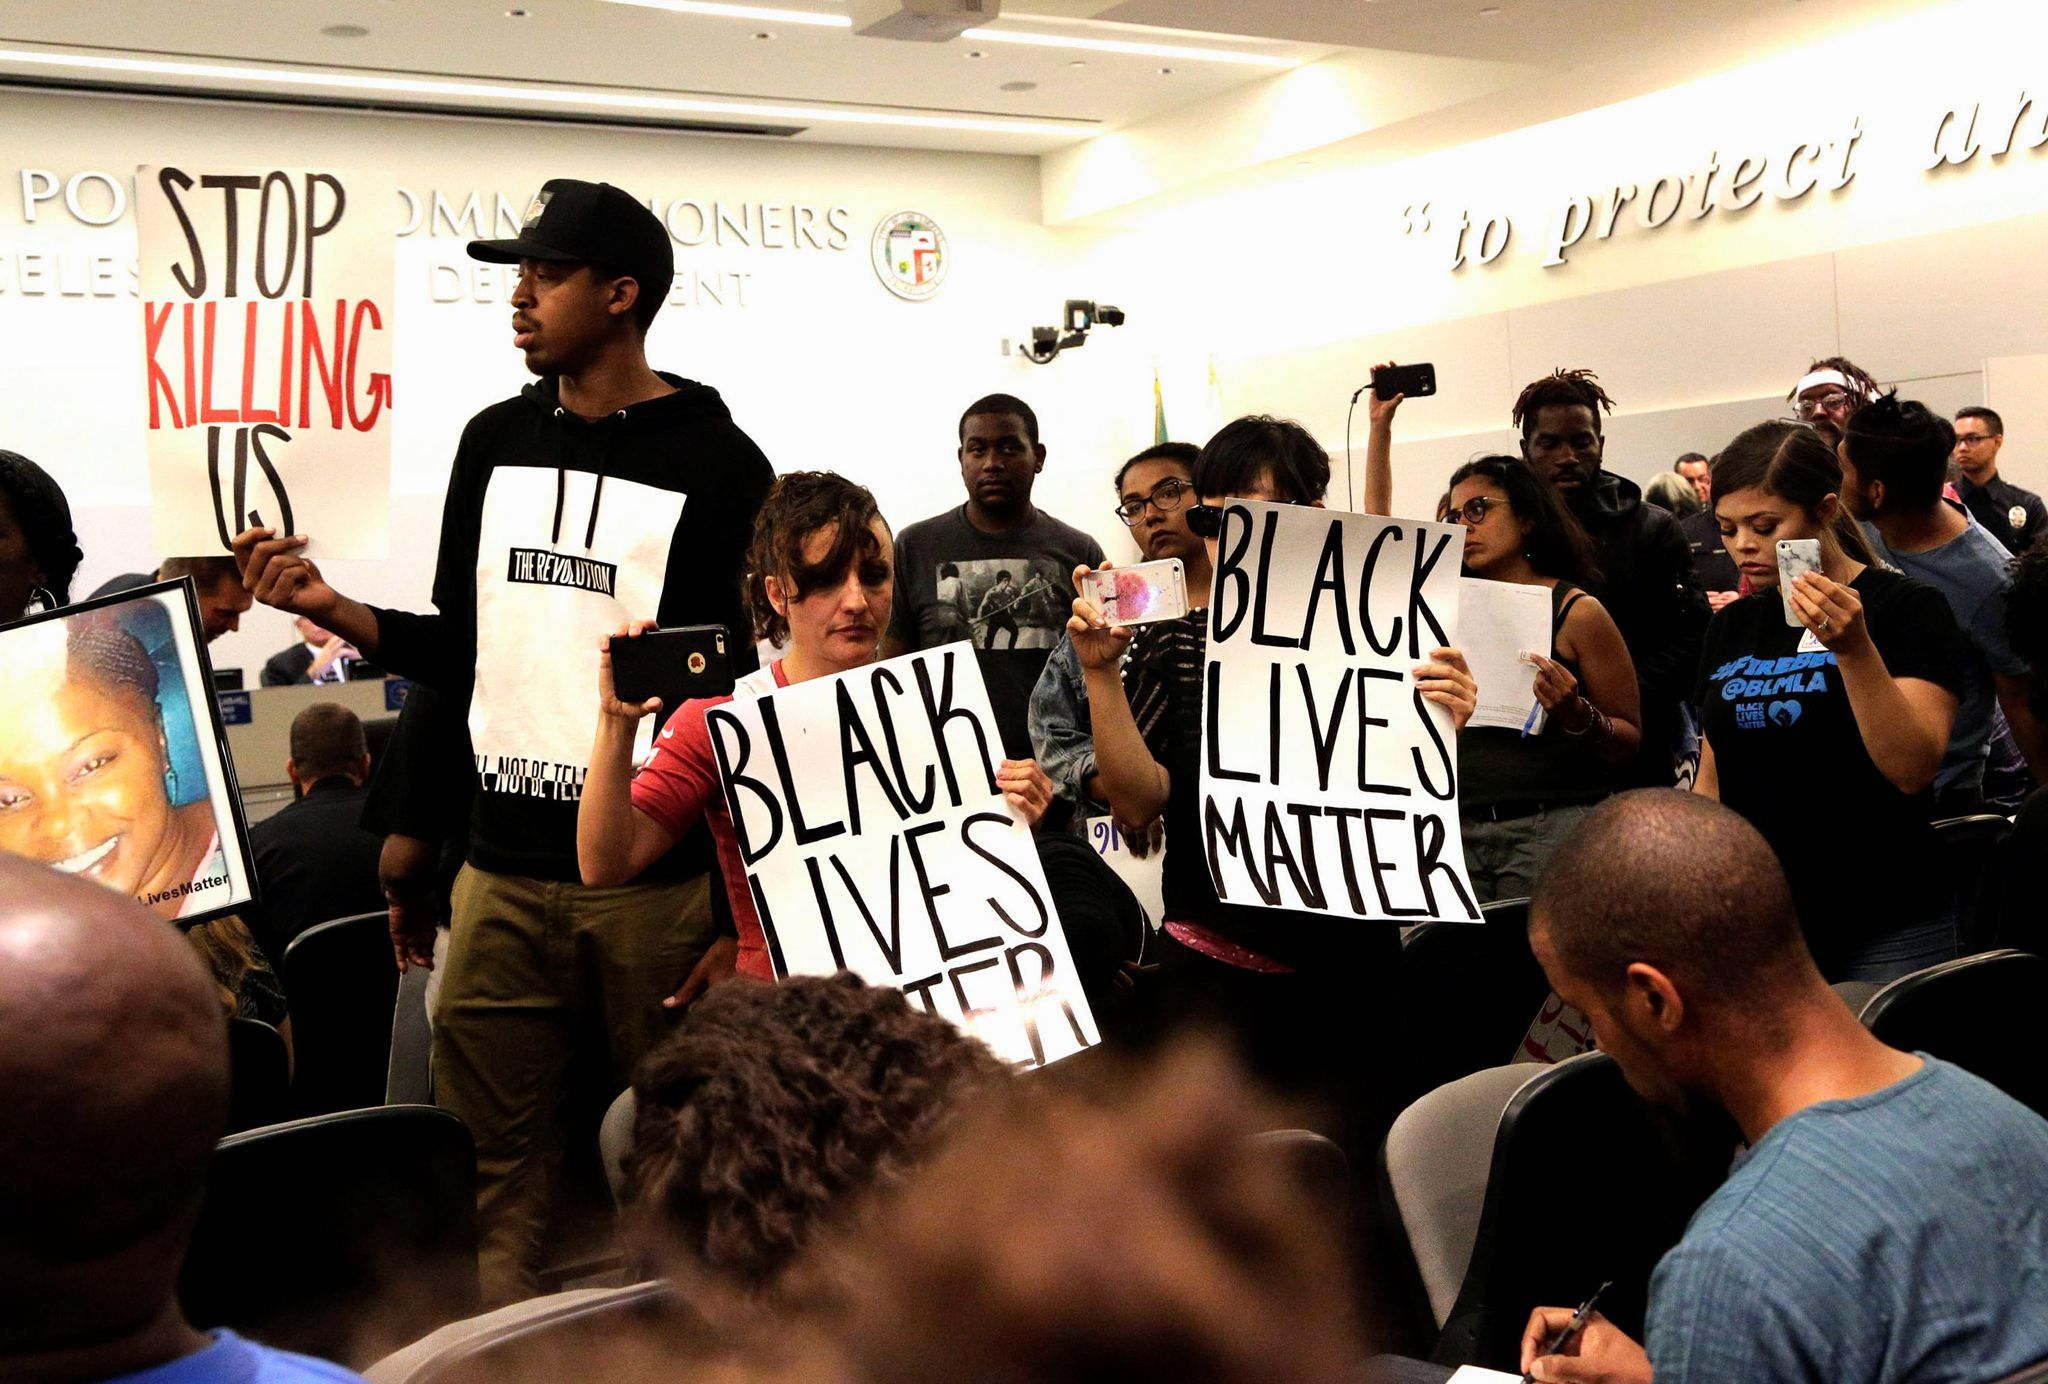 Black Lives Matter tactics prompt questions about true aims of social justice movement